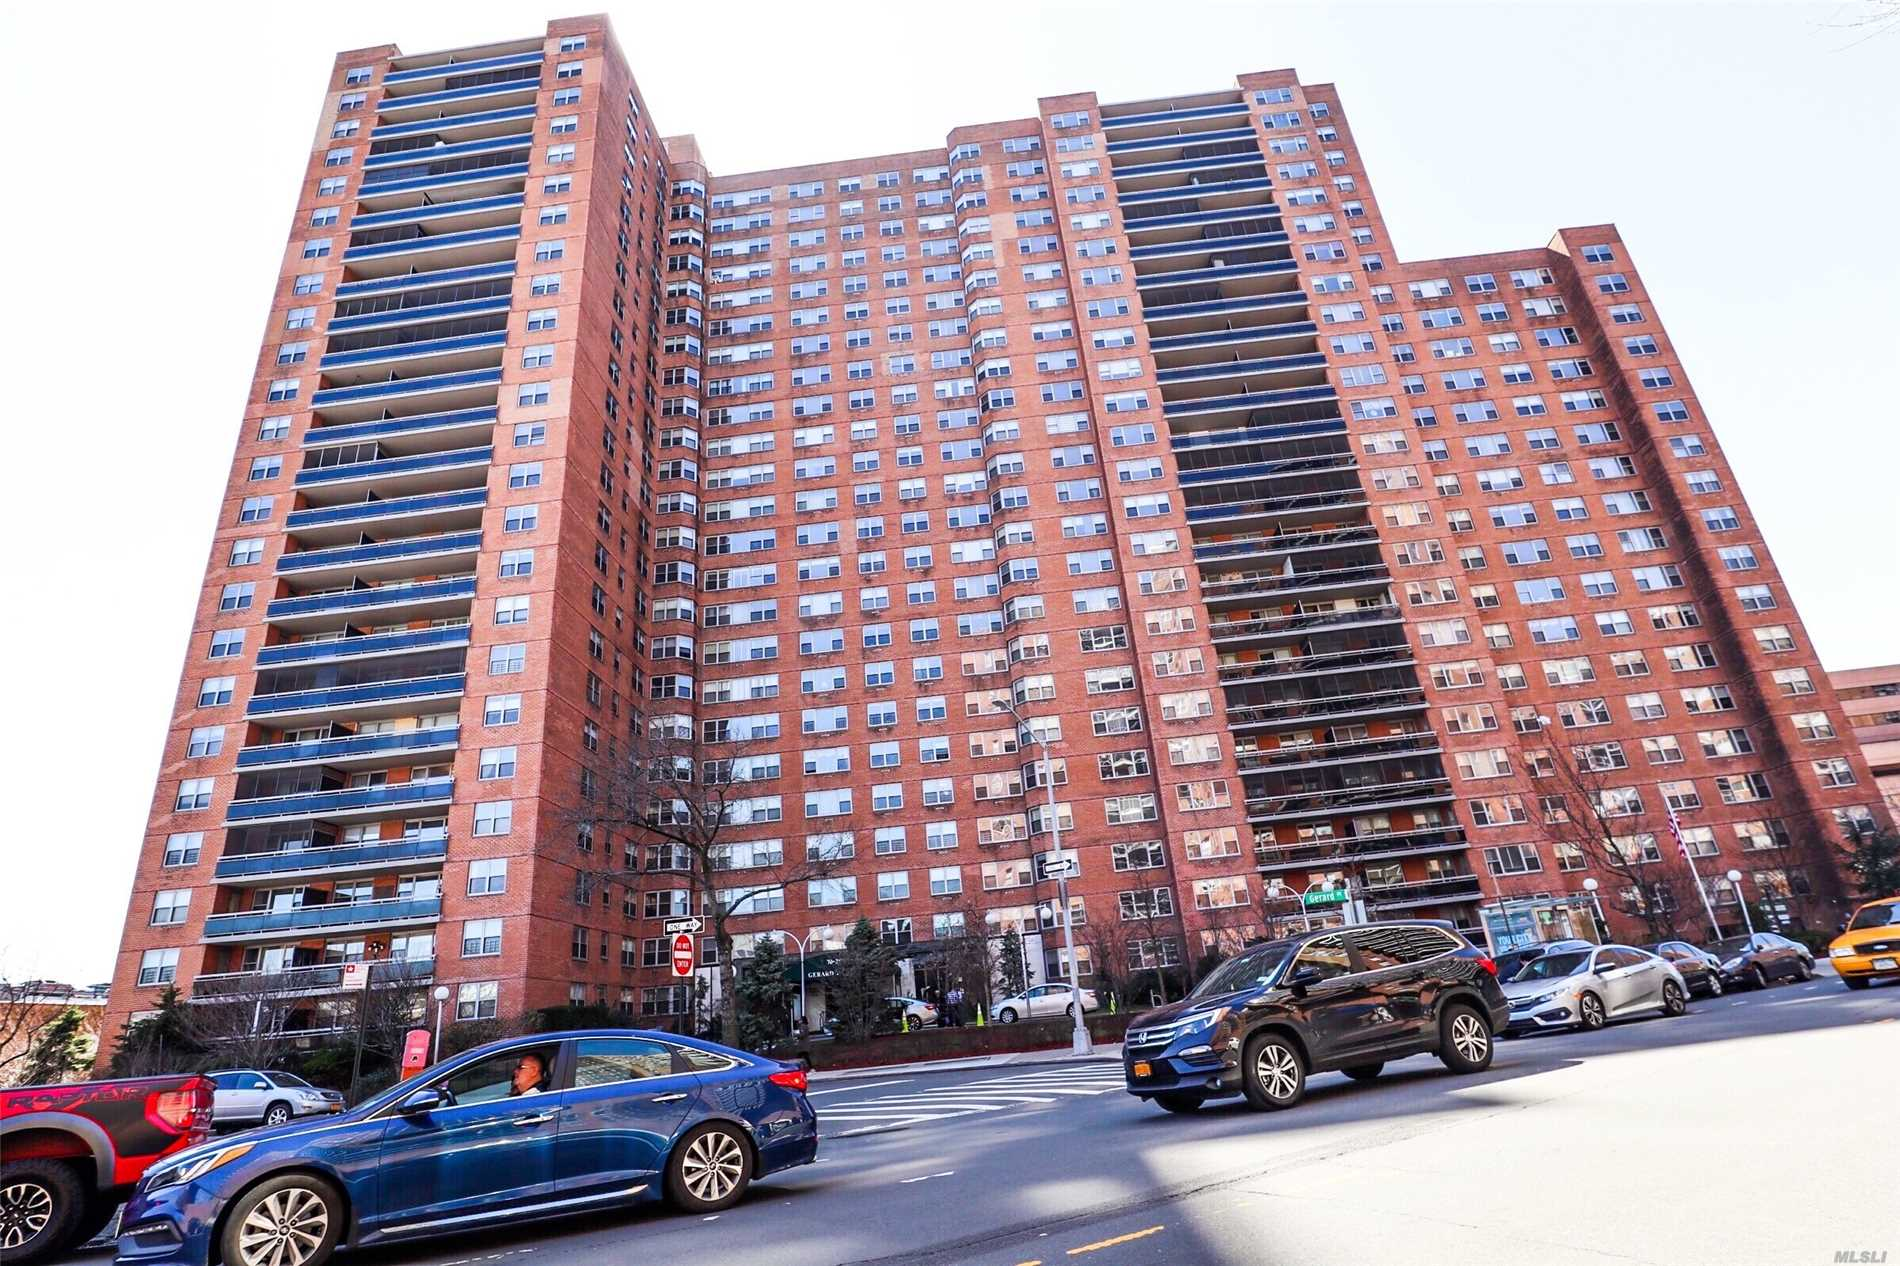 Mint Condition One Bedroom (Southern Exposure) Unit Is Located In The Heart Of Forest Hills. Walking Distance To The Subway Station E, F, M, R At Forest Hills-71 Ave Or 67 Ave, And Lirr. Close To All Major Banks, Restaurants, And Shopping Centers. The Maintainese Fee Covers Everything Except For The Electric. Gerard Towers Has 24/7 Doorman, Seasonal Heated Pool And Gym.